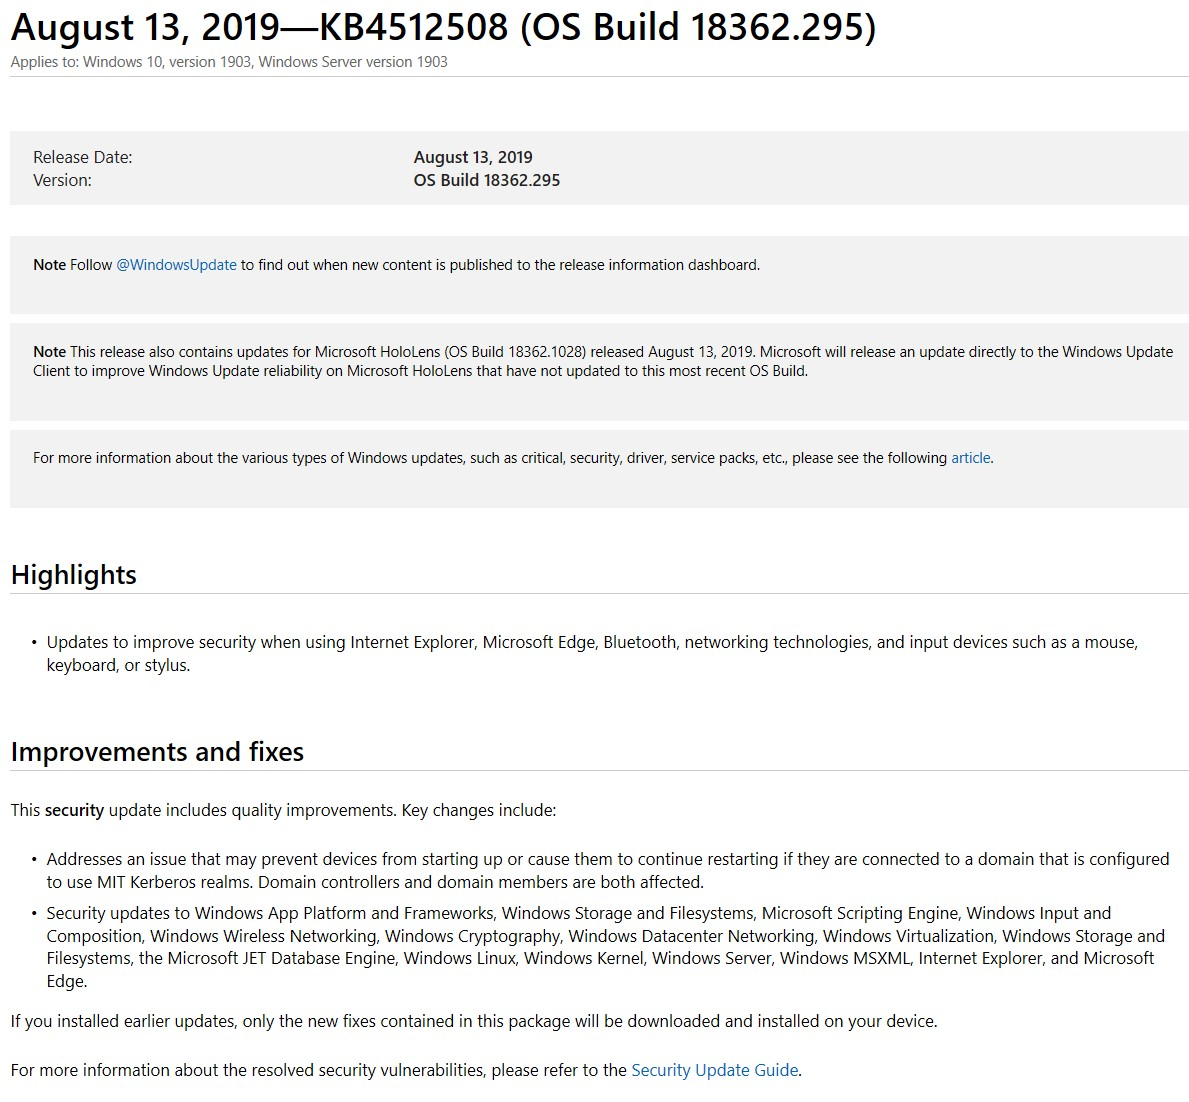 Cumulative (KB4512508) Is Out Today 8/13/19 Bringing the Win 10 1903 To OS Build To 18362.295 14262ee2-435f-4056-8247-48d13ea828d7?upload=true.jpg